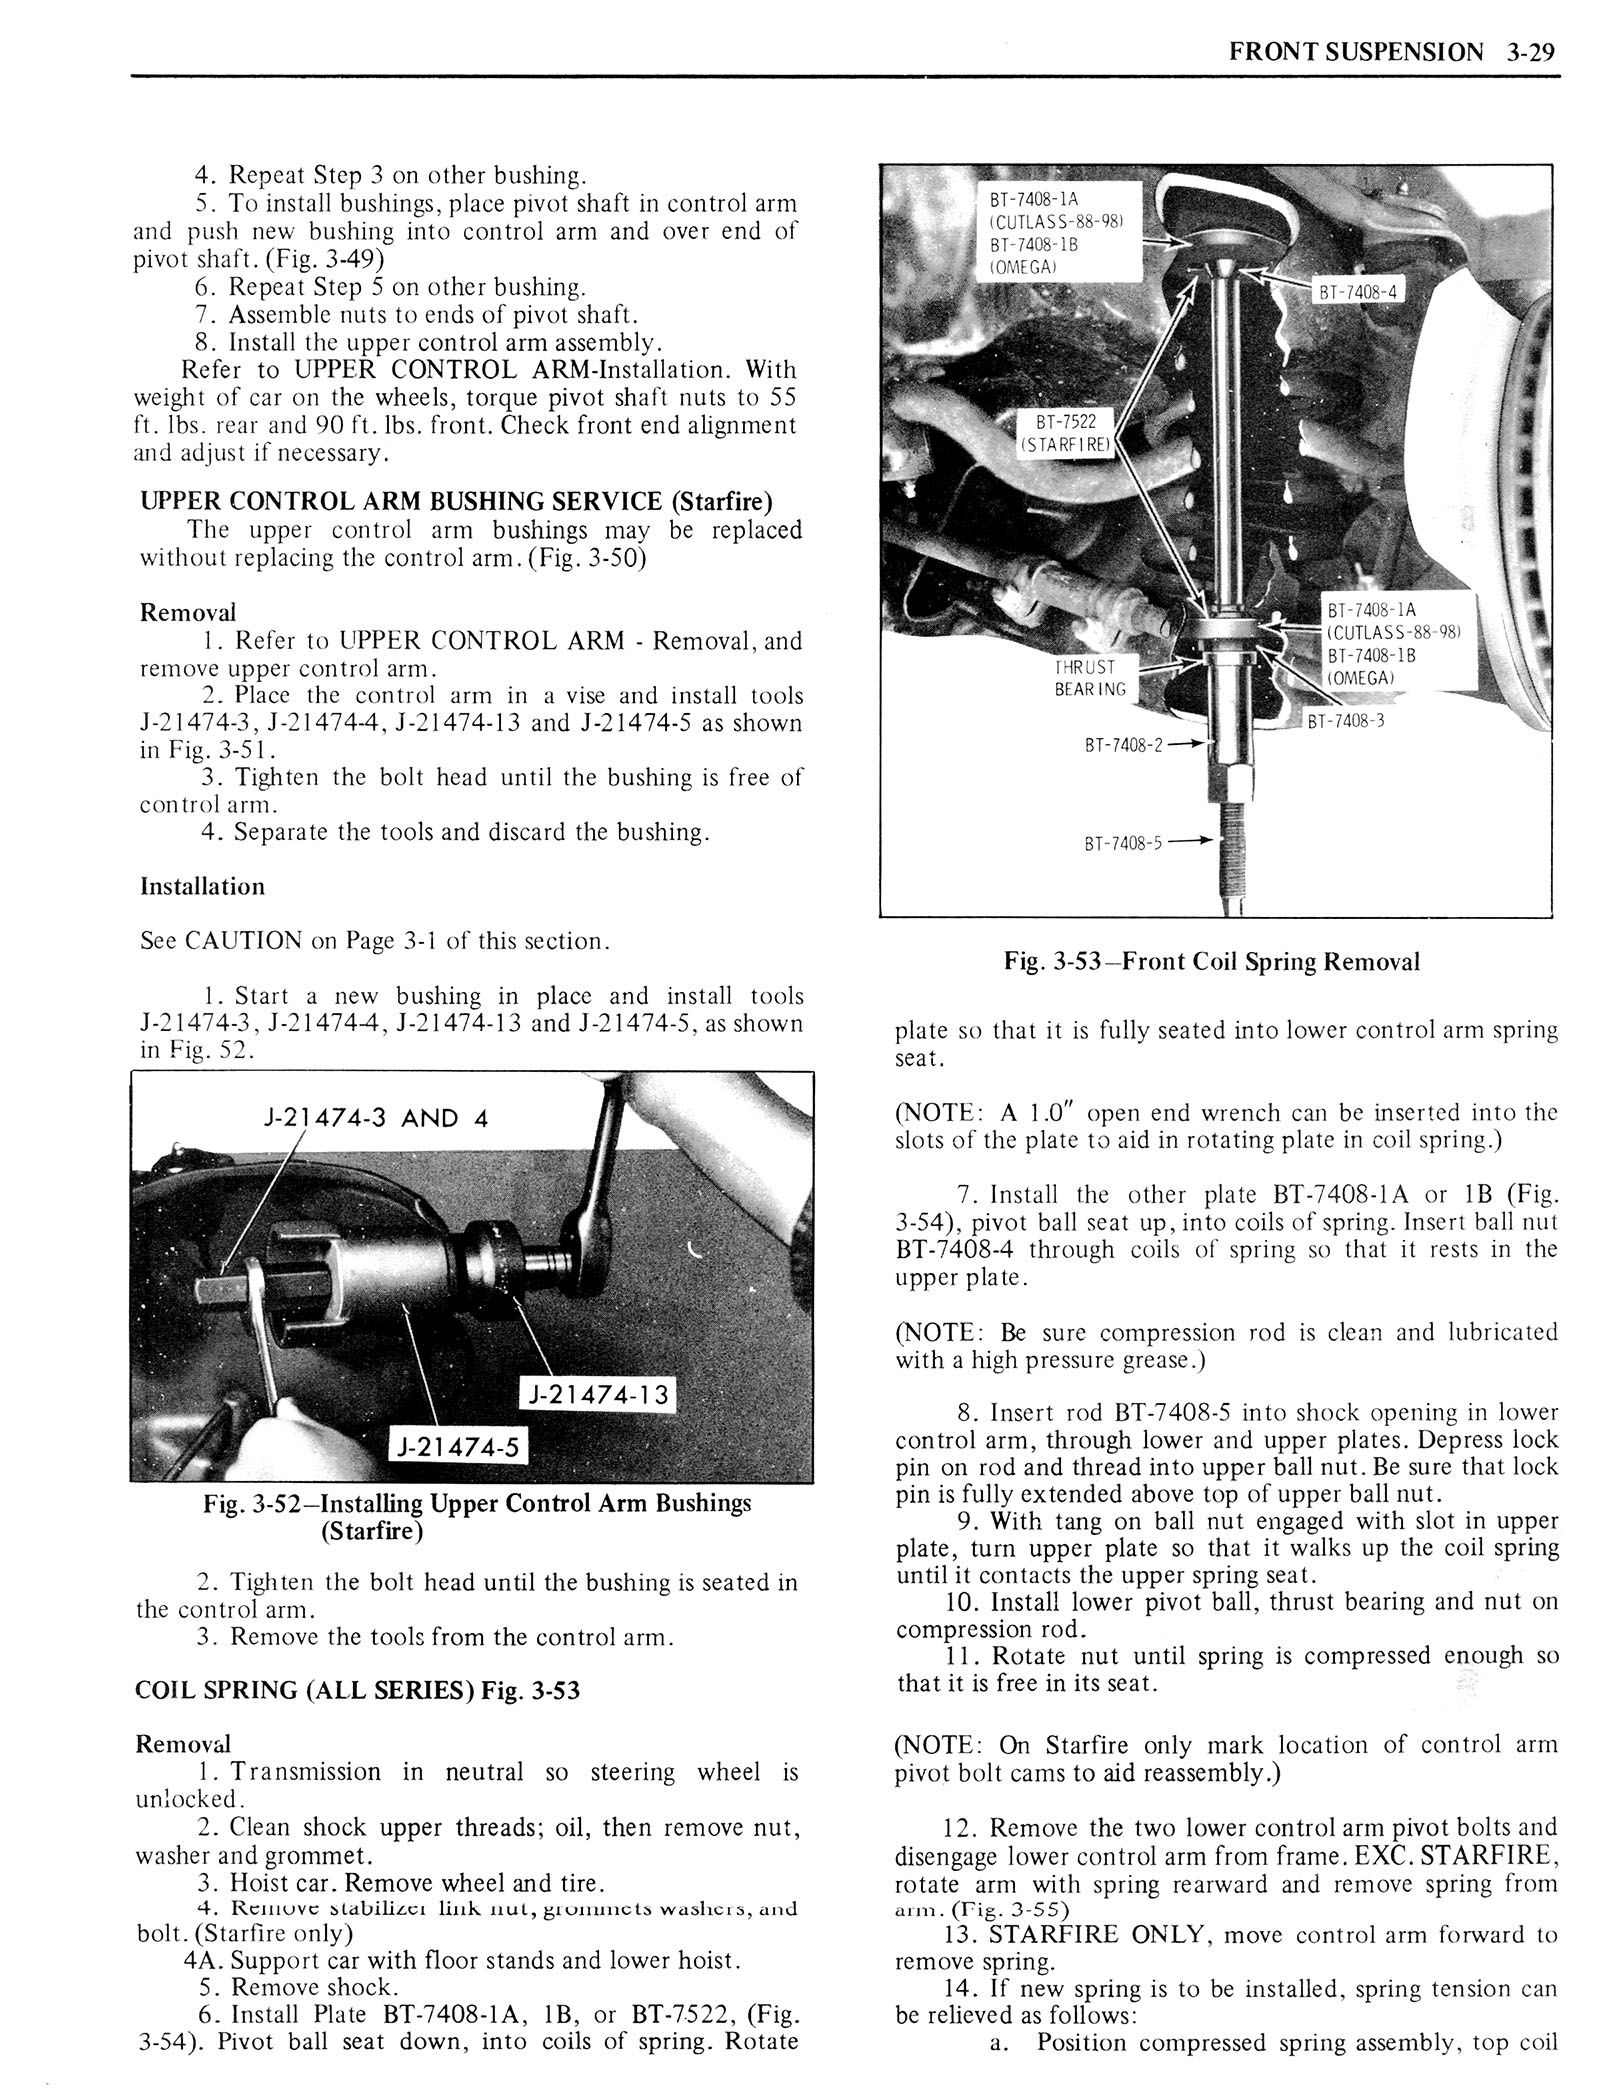 1976 Oldsmobile Service Manual page 201 of 1390